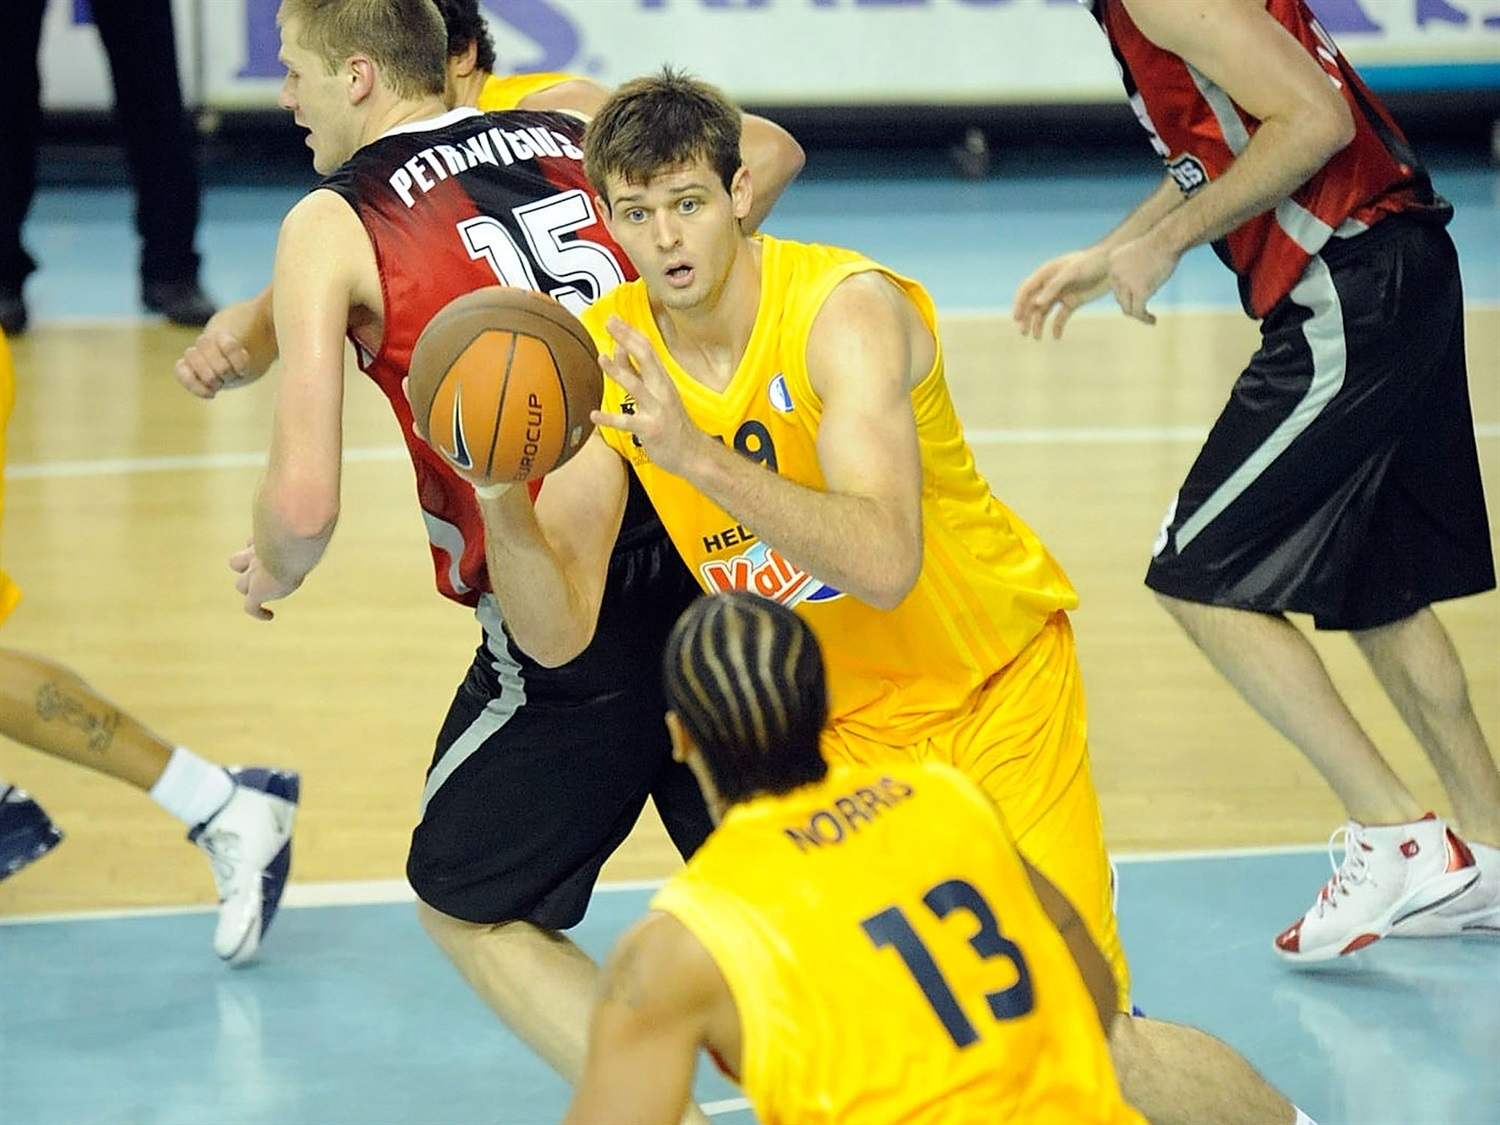 Joel Freeland - Kalise Gran Canaria (photo Gran Canaria) - EC08